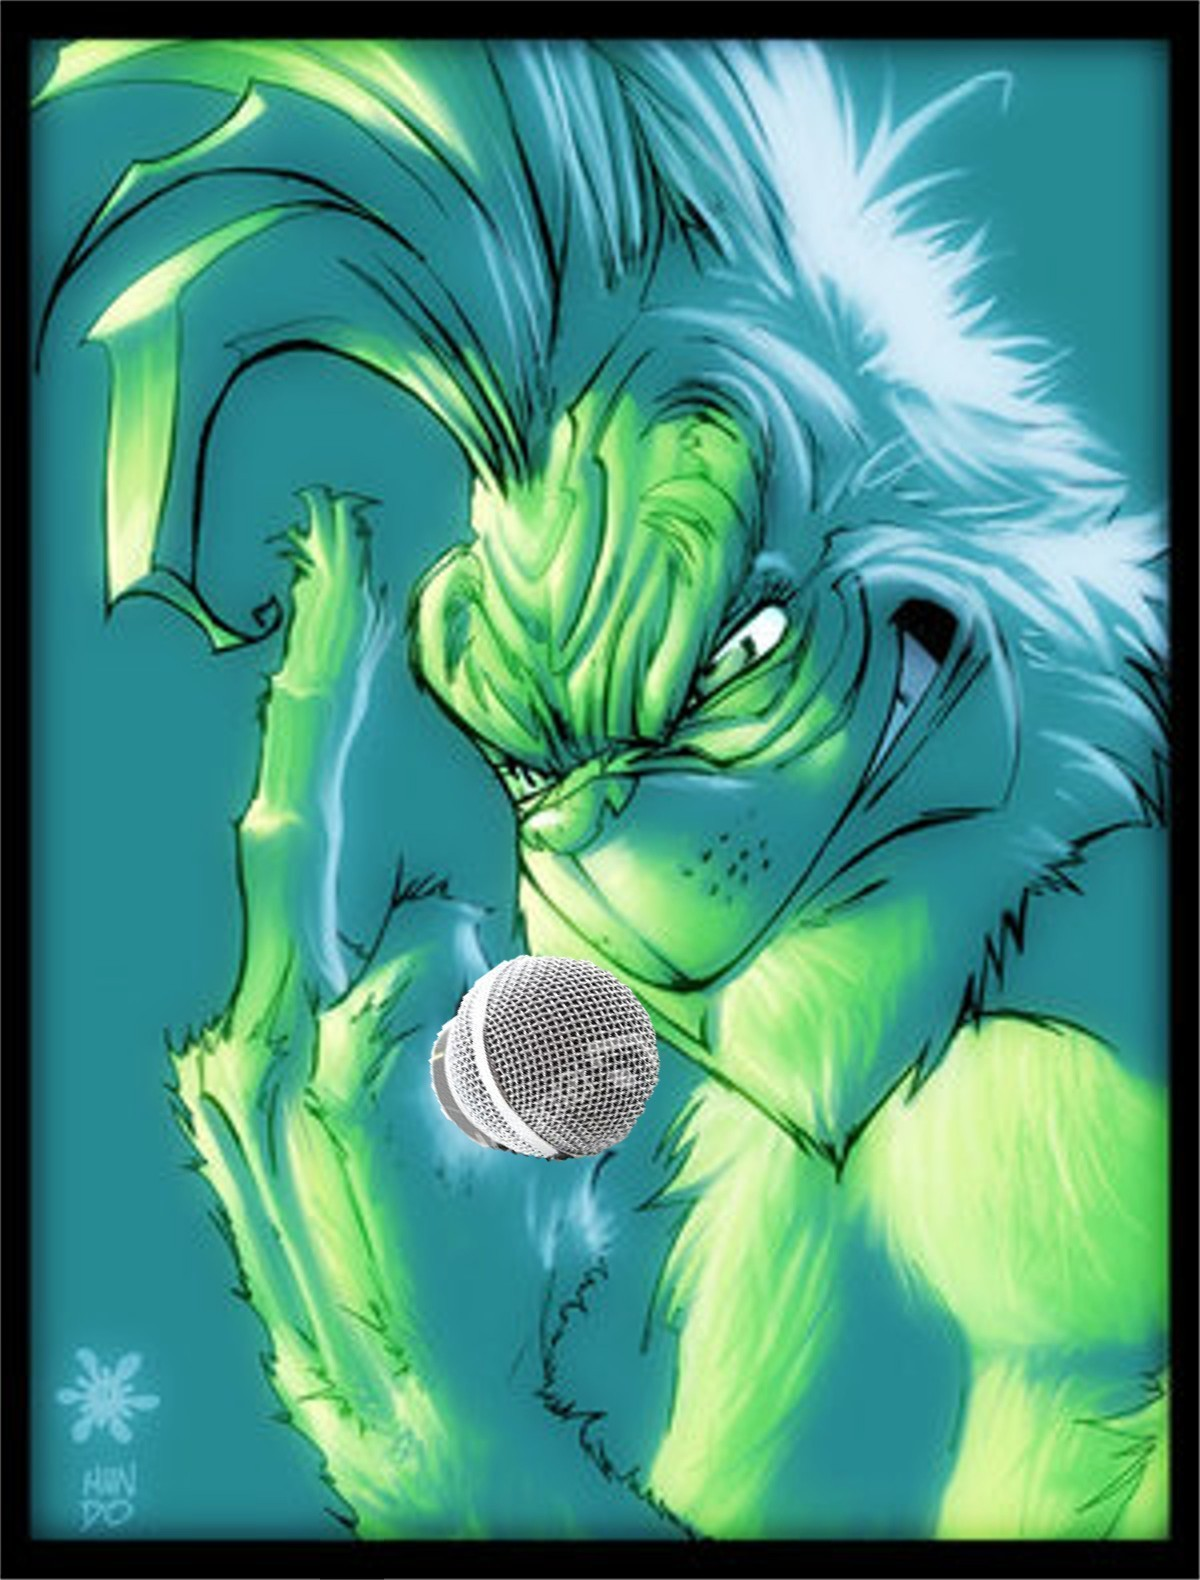 THE GRYNCH Images GRINCH RULEZ HD Wallpaper And Background Photos